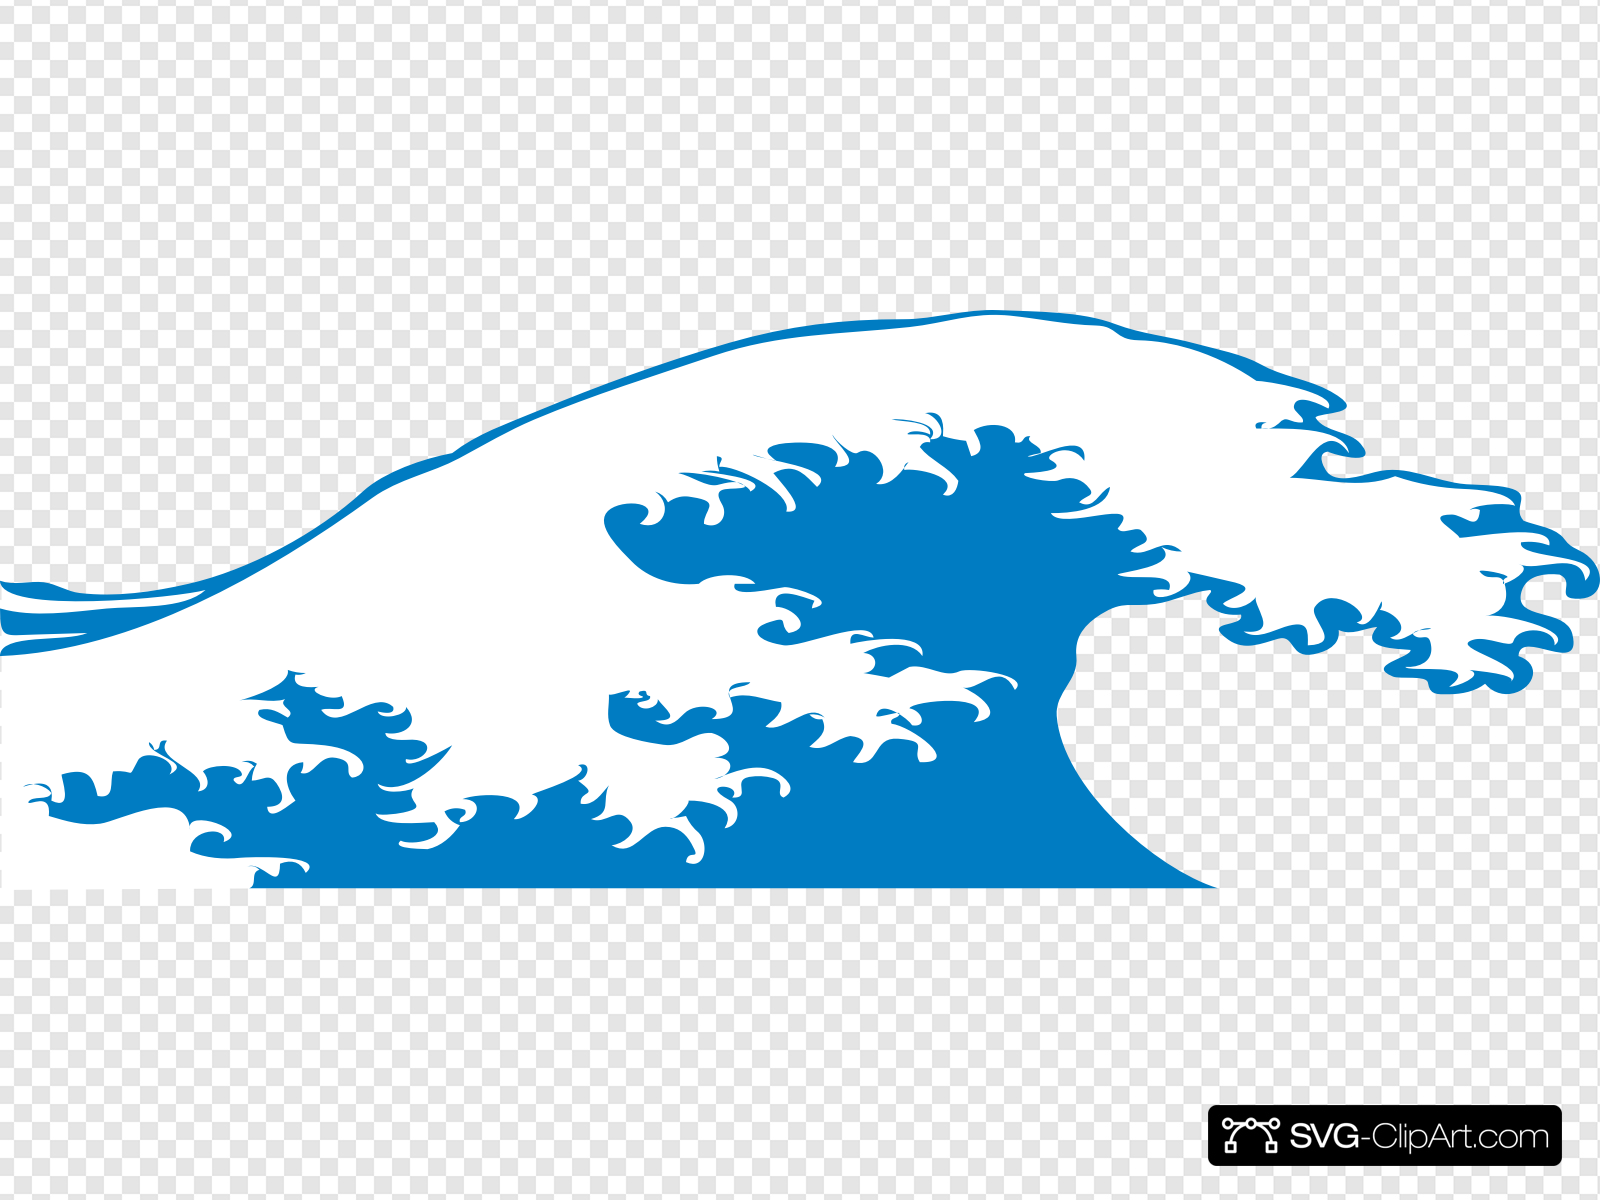 Crashing Wave Clip art, Icon and SVG.